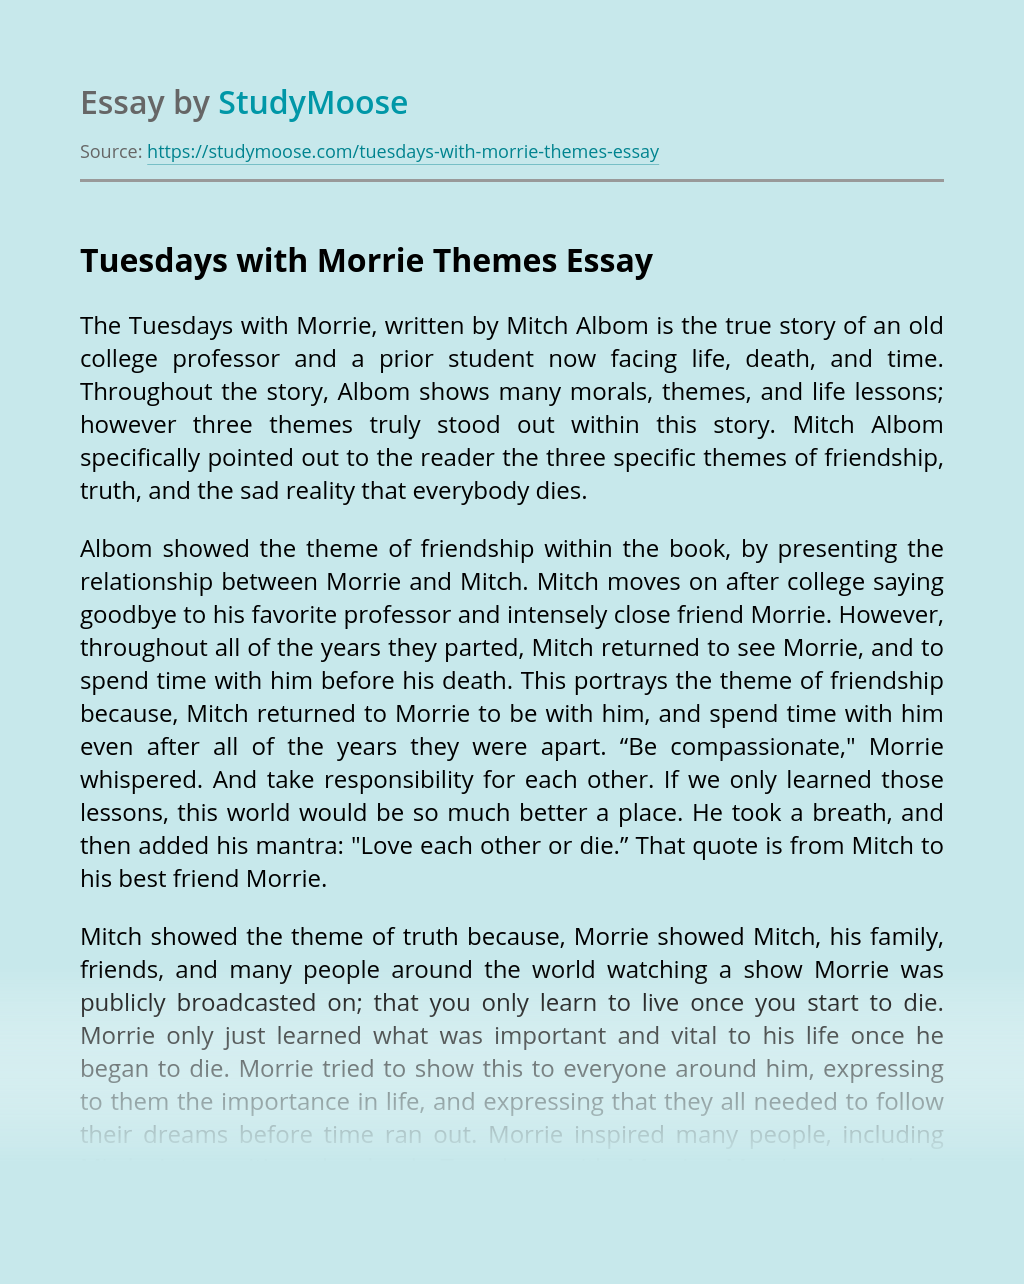 Tuesdays with Morrie Themes